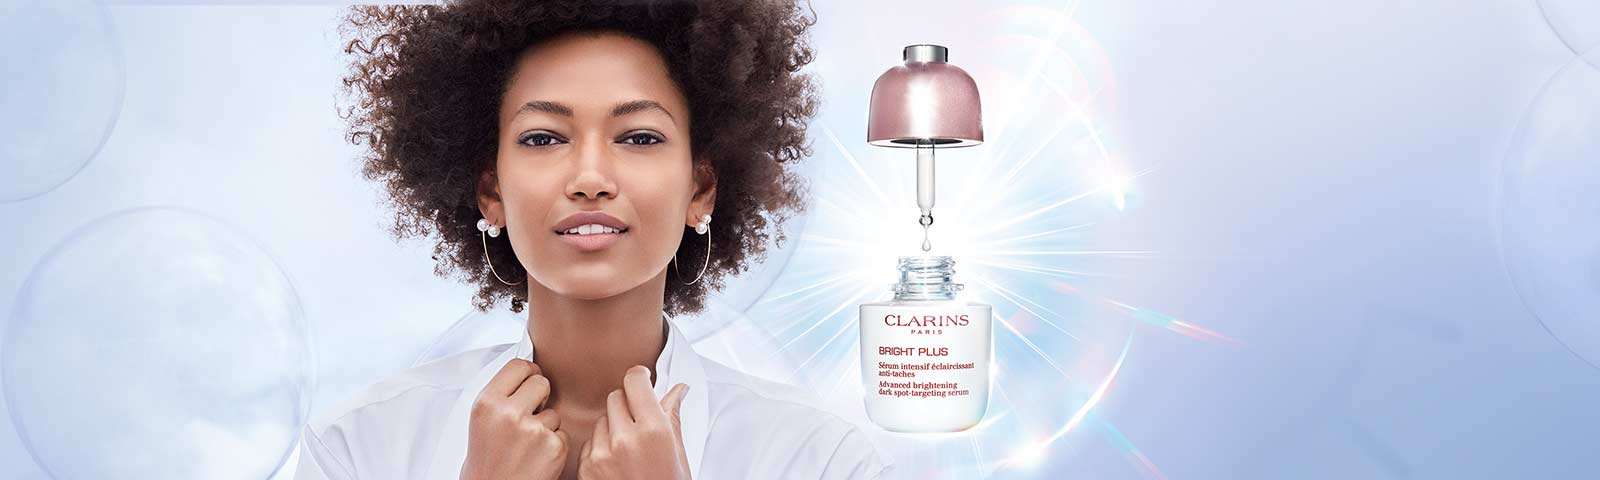 Bright Plus Serum: Visibly brightens, evens, targets the appearance of dark spots.